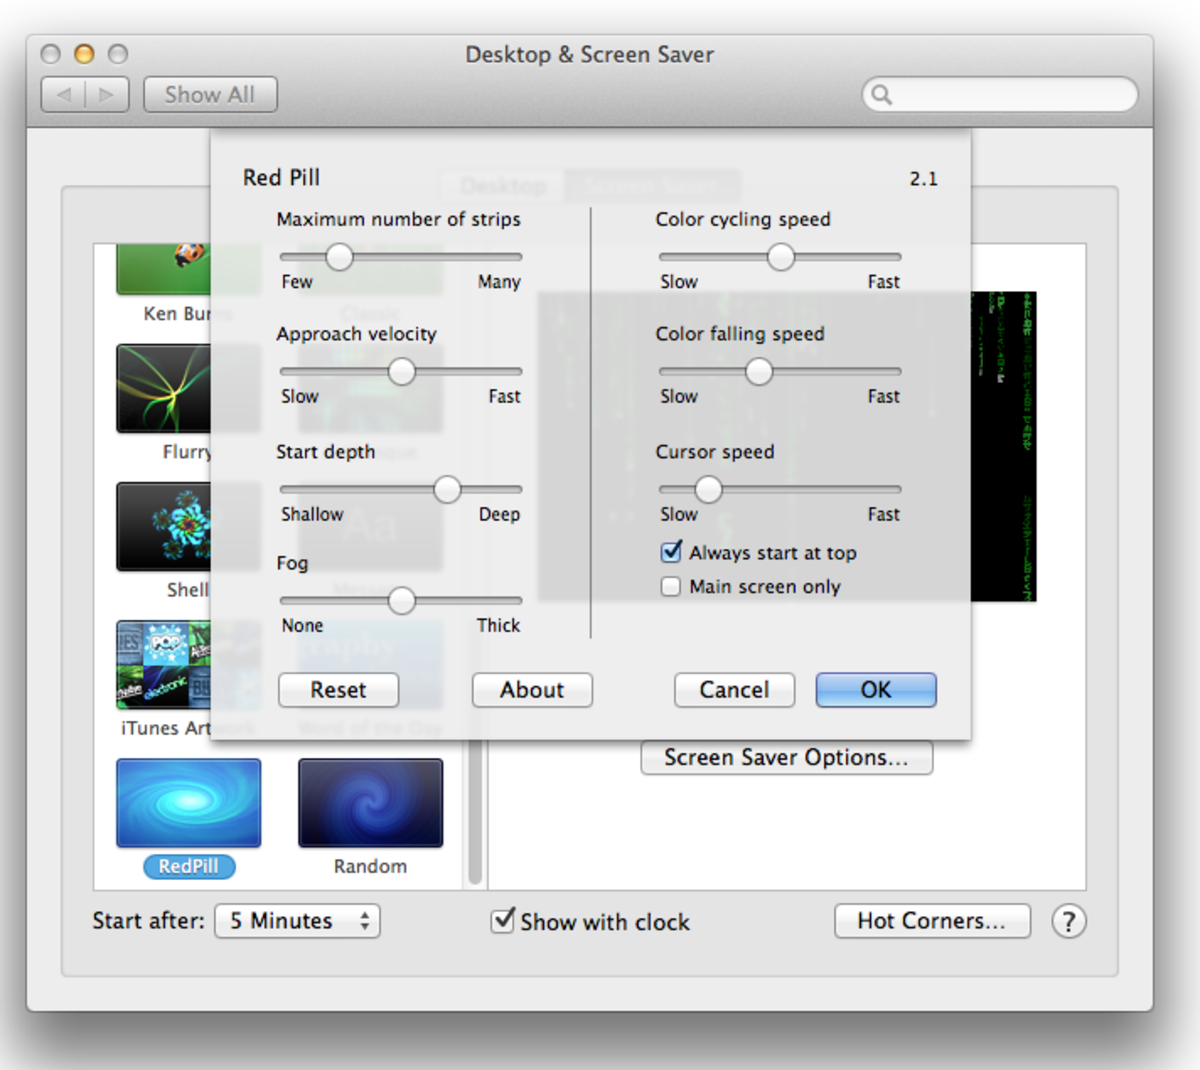 RedPill - Matrix Screen Saver for Mac OS X | HubPages